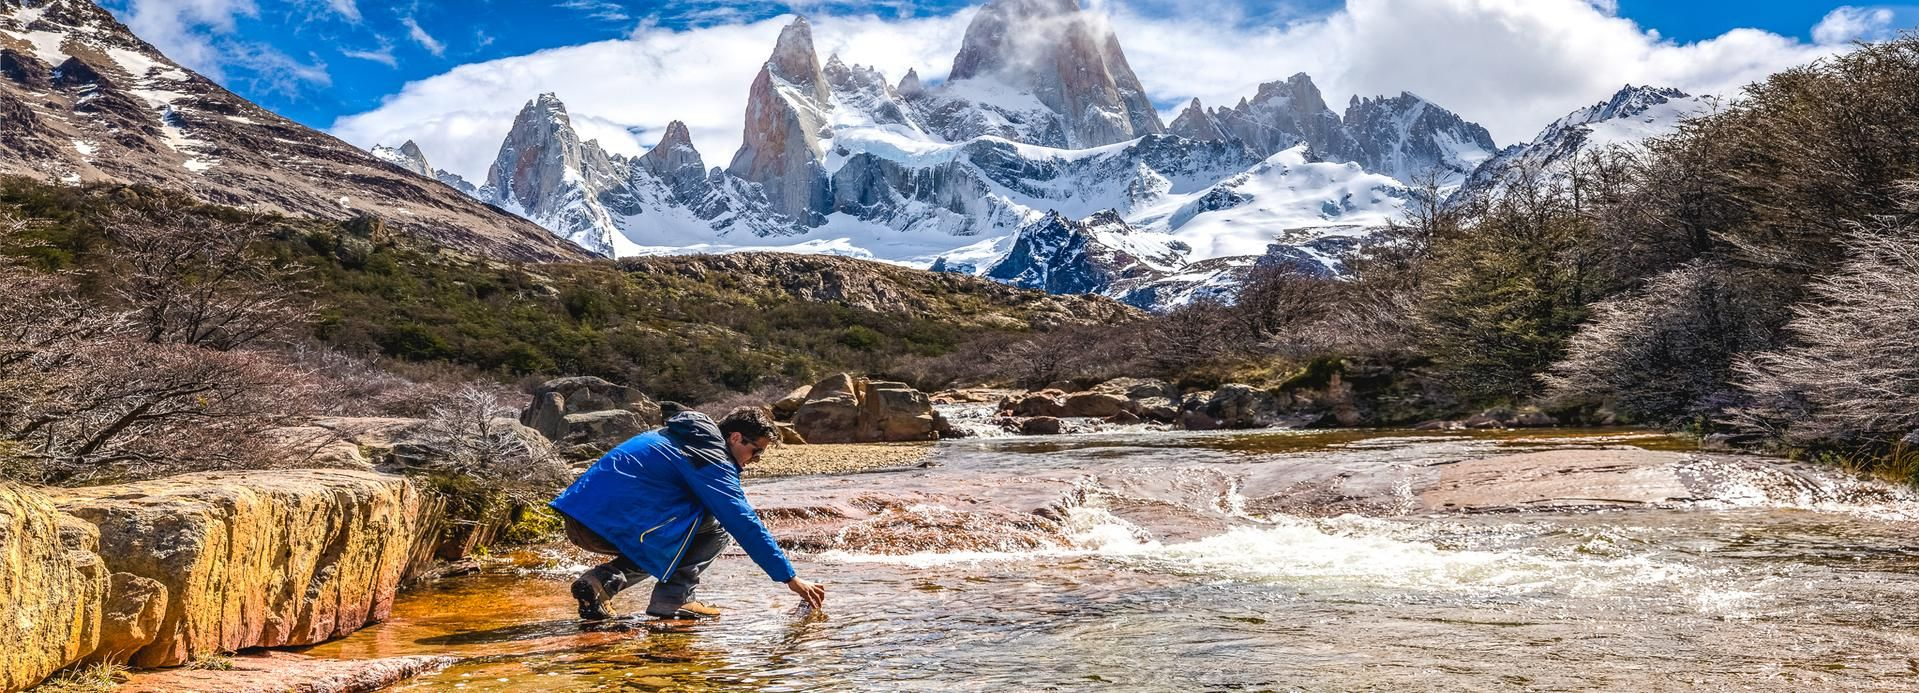 From El Calafate: Full-Day Tour to El Chaltén